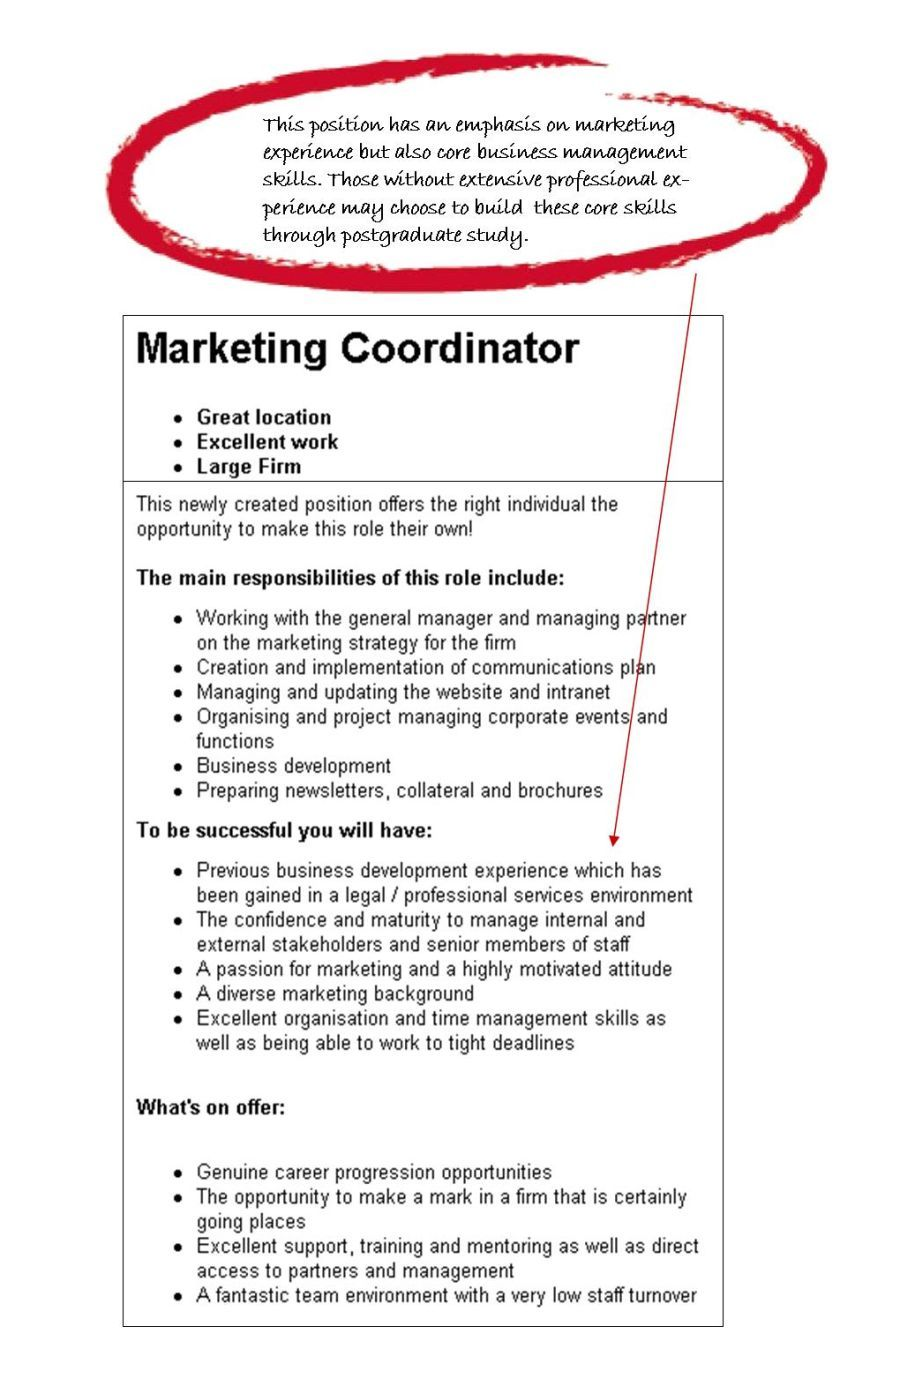 Resume Objectives Samples Objectives For Resume  Resume  Pinterest  Resume Objective And